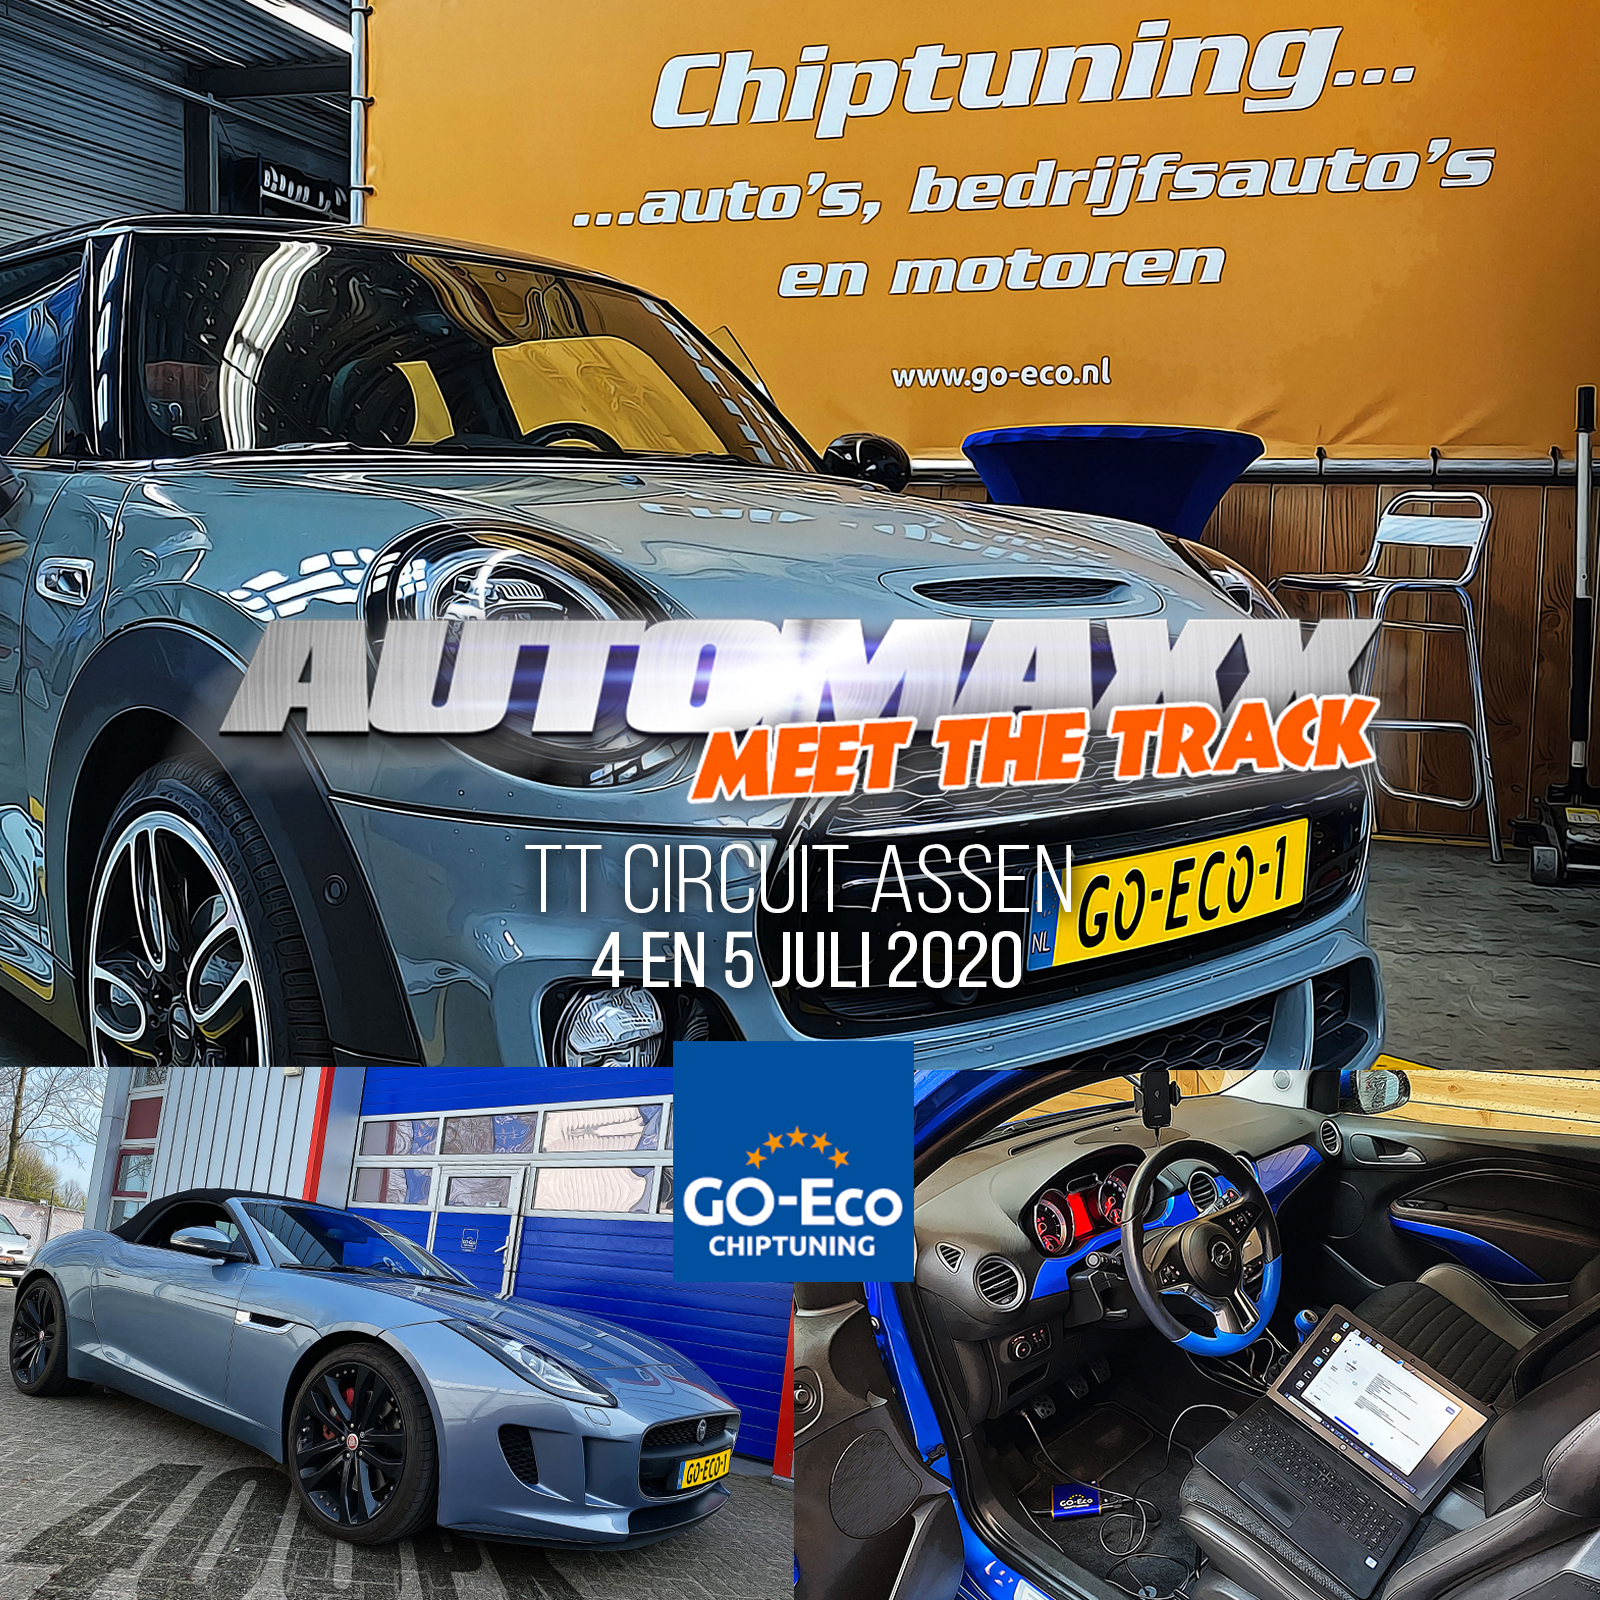 POWERED BY GO-ECO CHIPTUNING